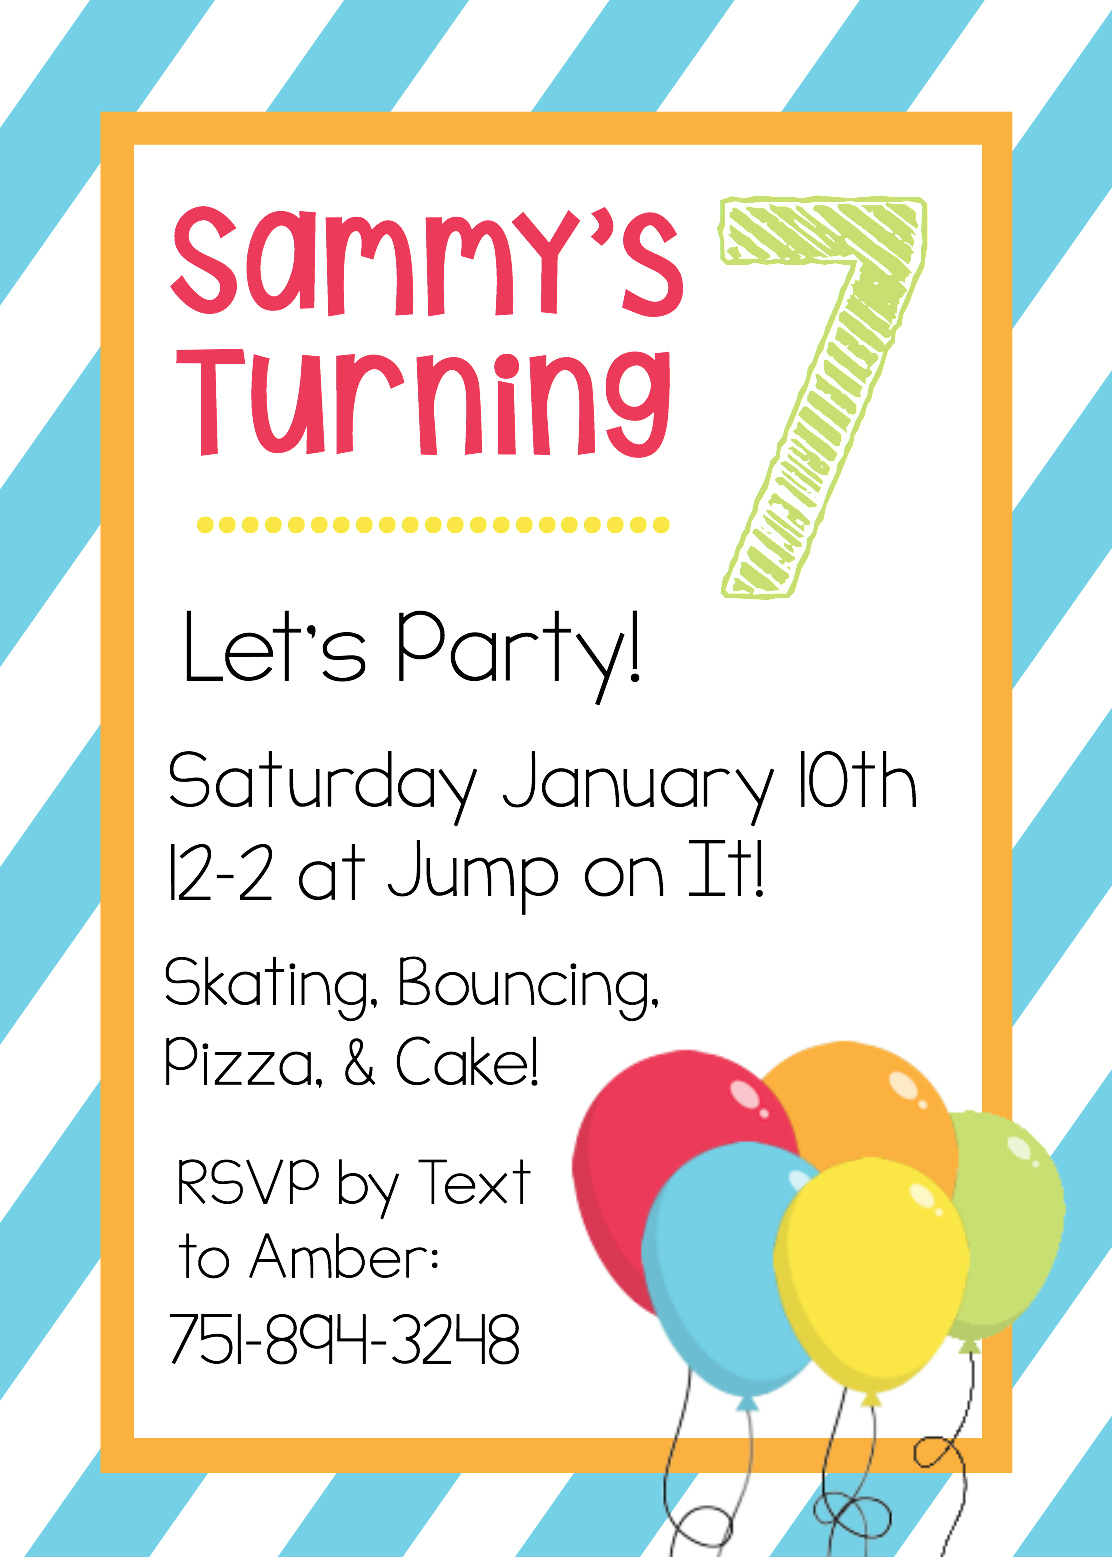 image regarding Printable Party Invitations identified as Totally free Printable Birthday Invitation Templates